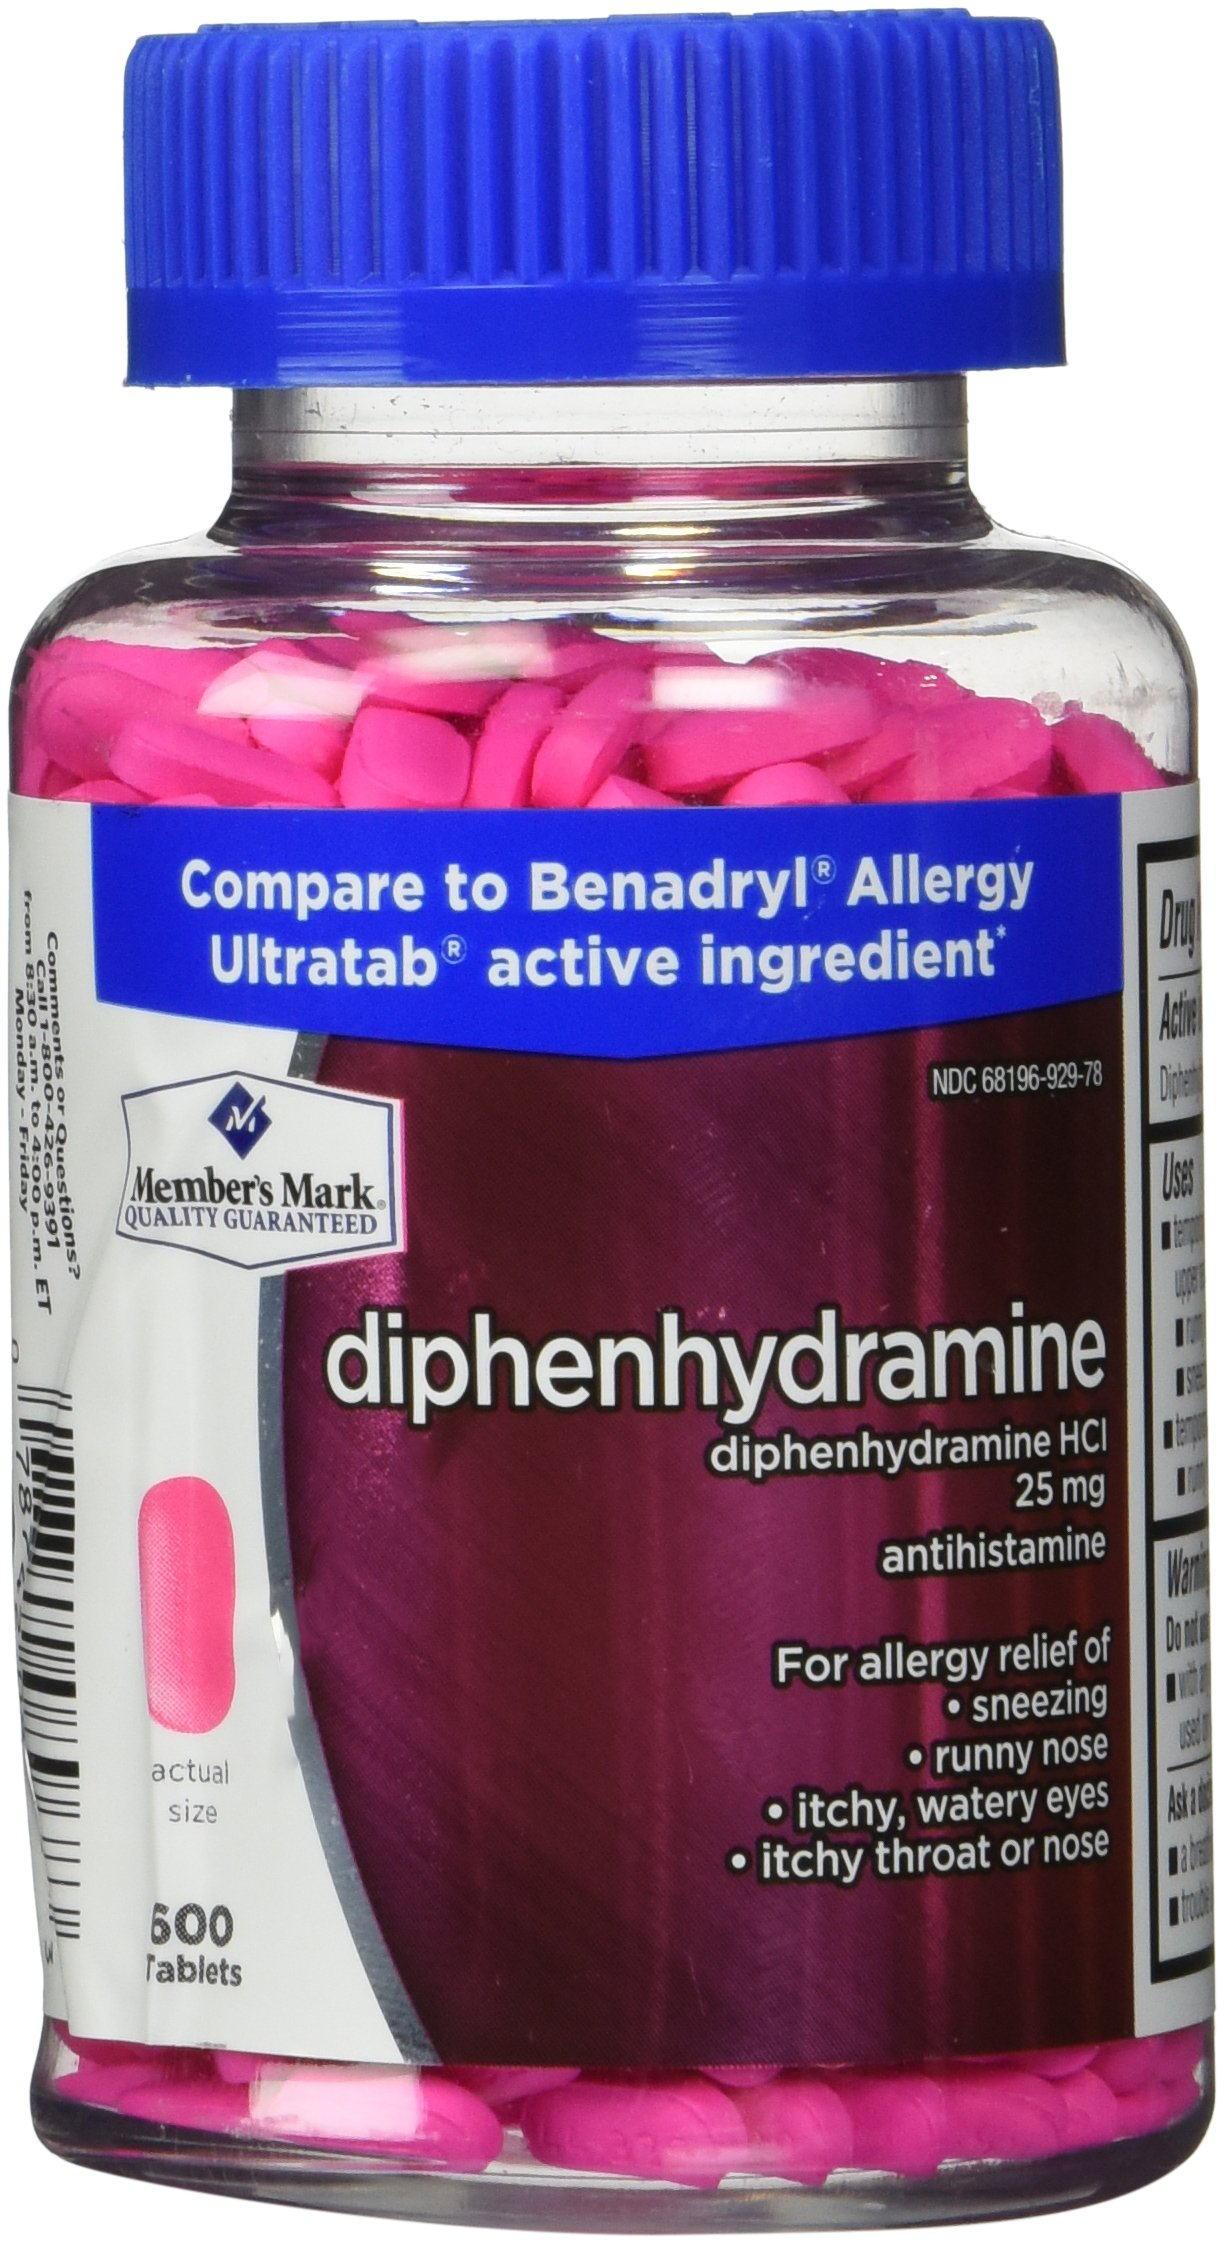 Member's Mark Diphenhydramine HCI 25mg Antihistamine, 600 tablets formerly known as Simply Right